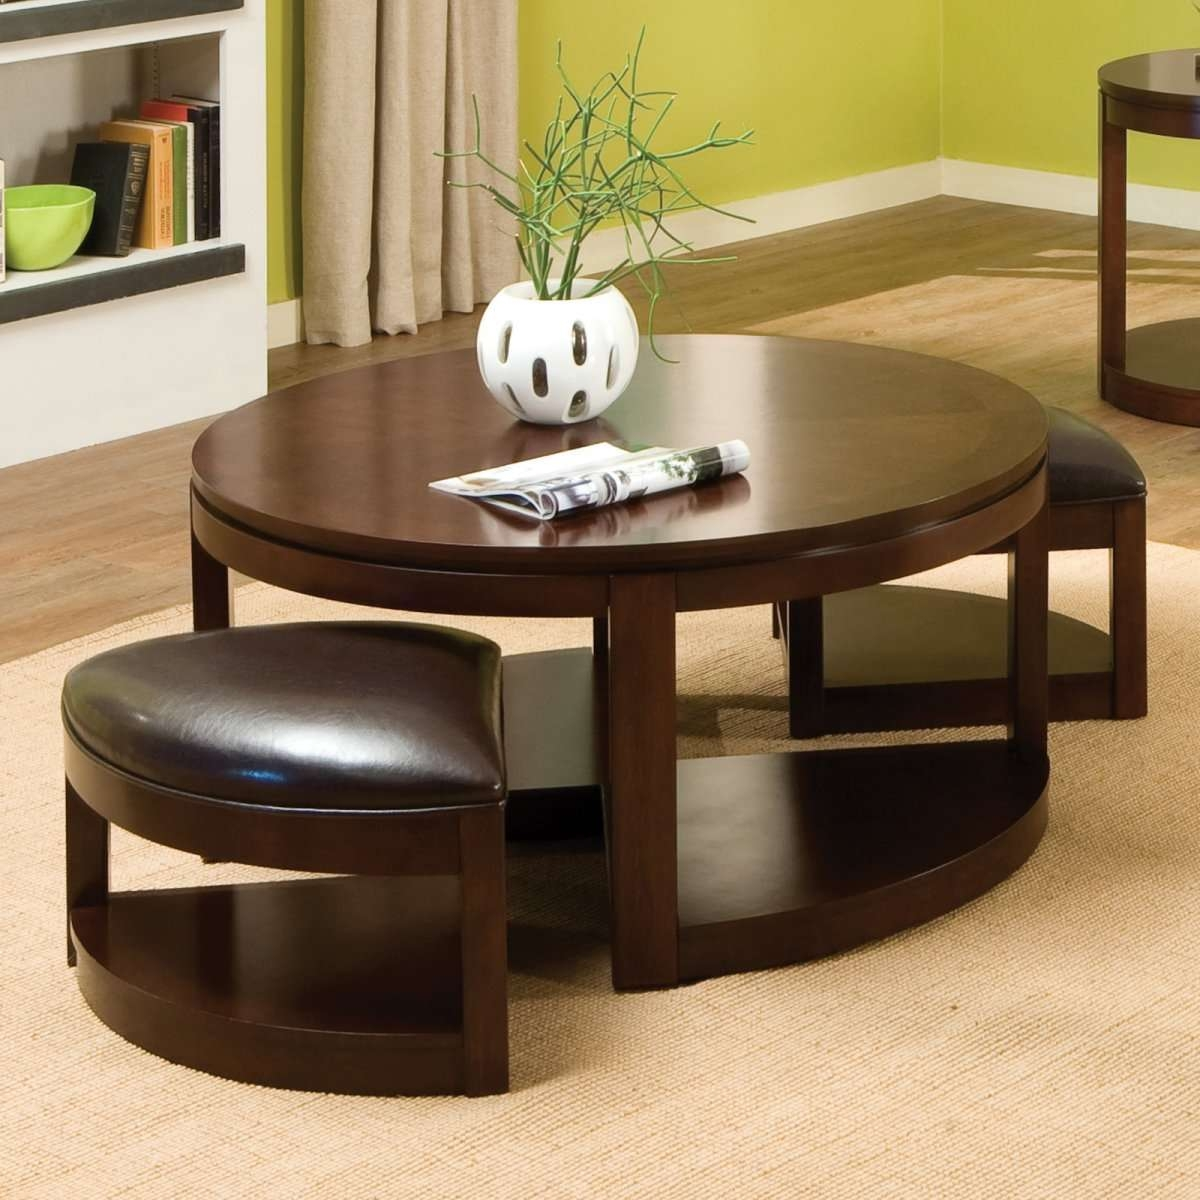 Trendy Coffee Table With Stools In Coffee Table, Coffee Tables With Stools Within Coffee Tables With (View 16 of 20)